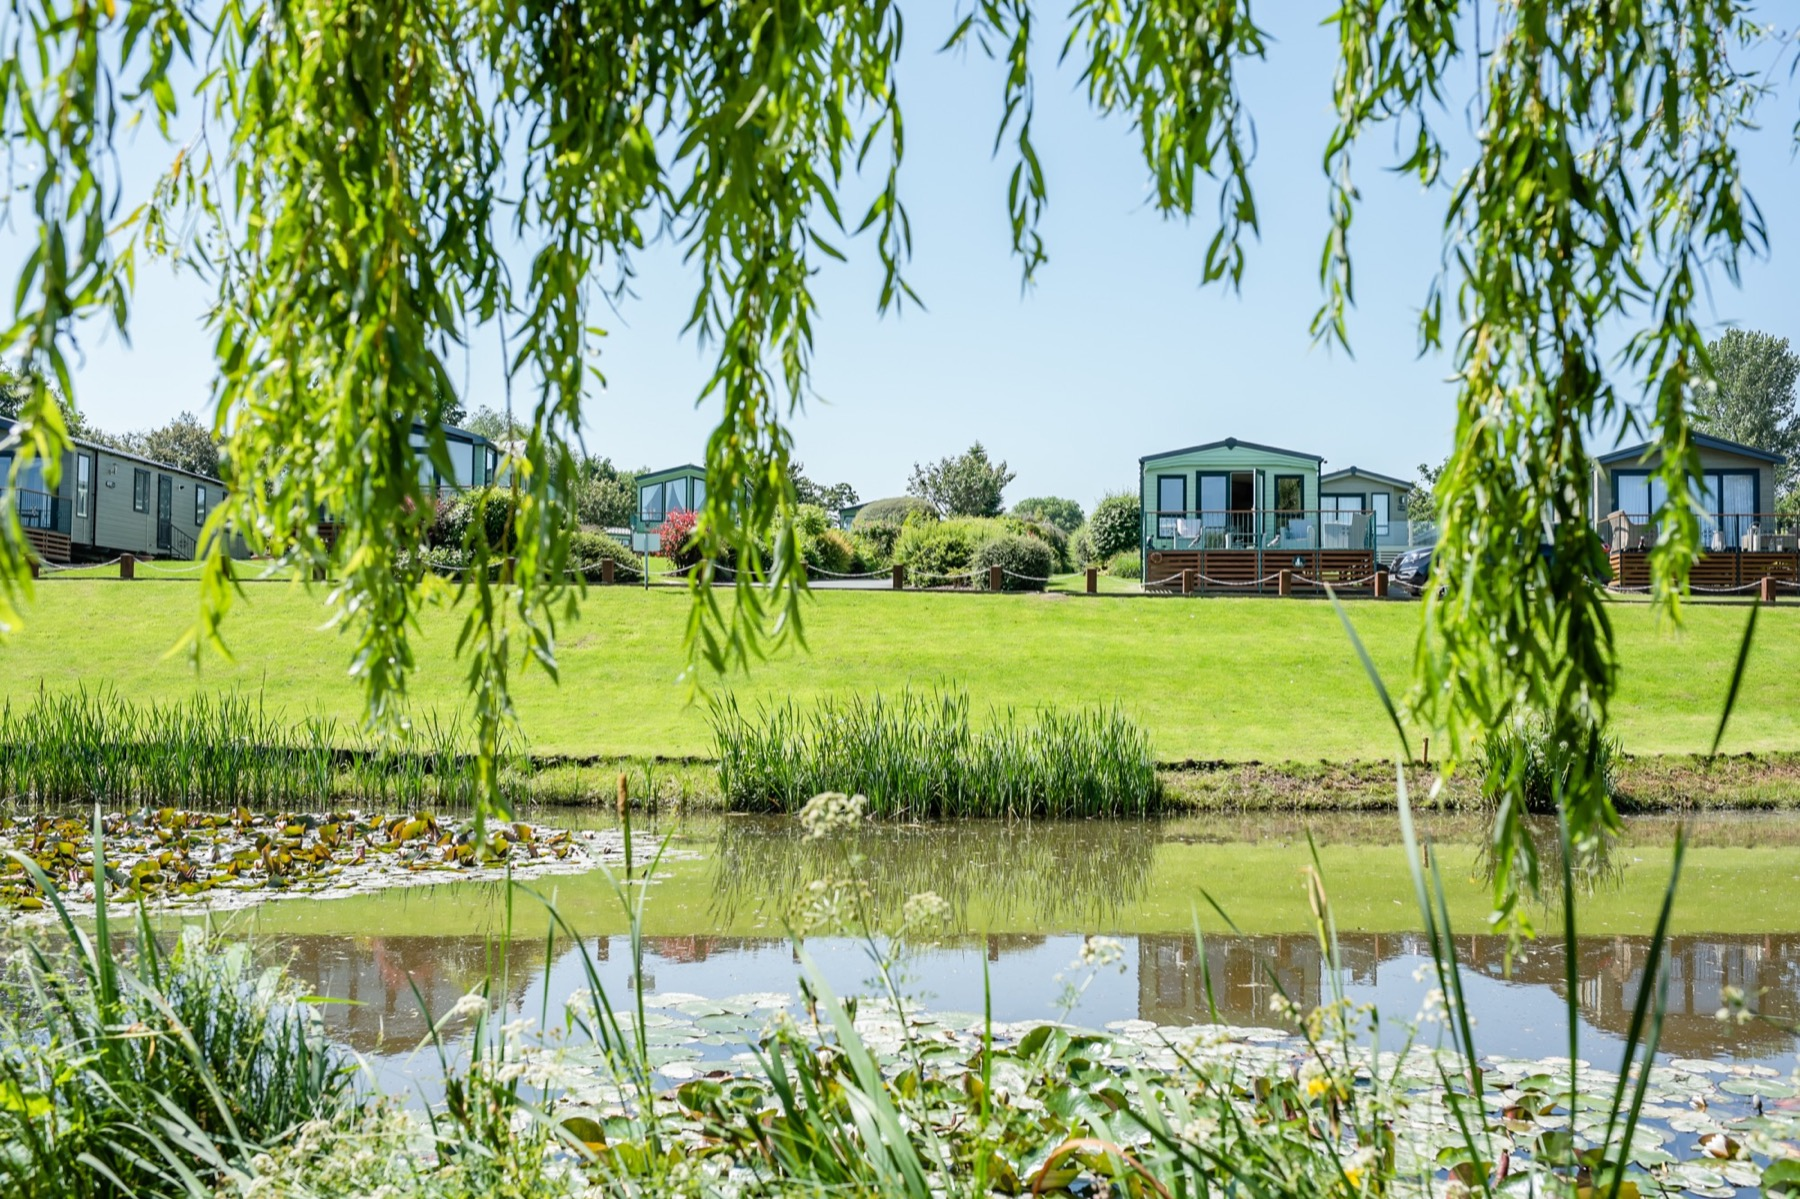 Your Countryside Staycation Destination – Enjoying your Time at Seven Oaks Park